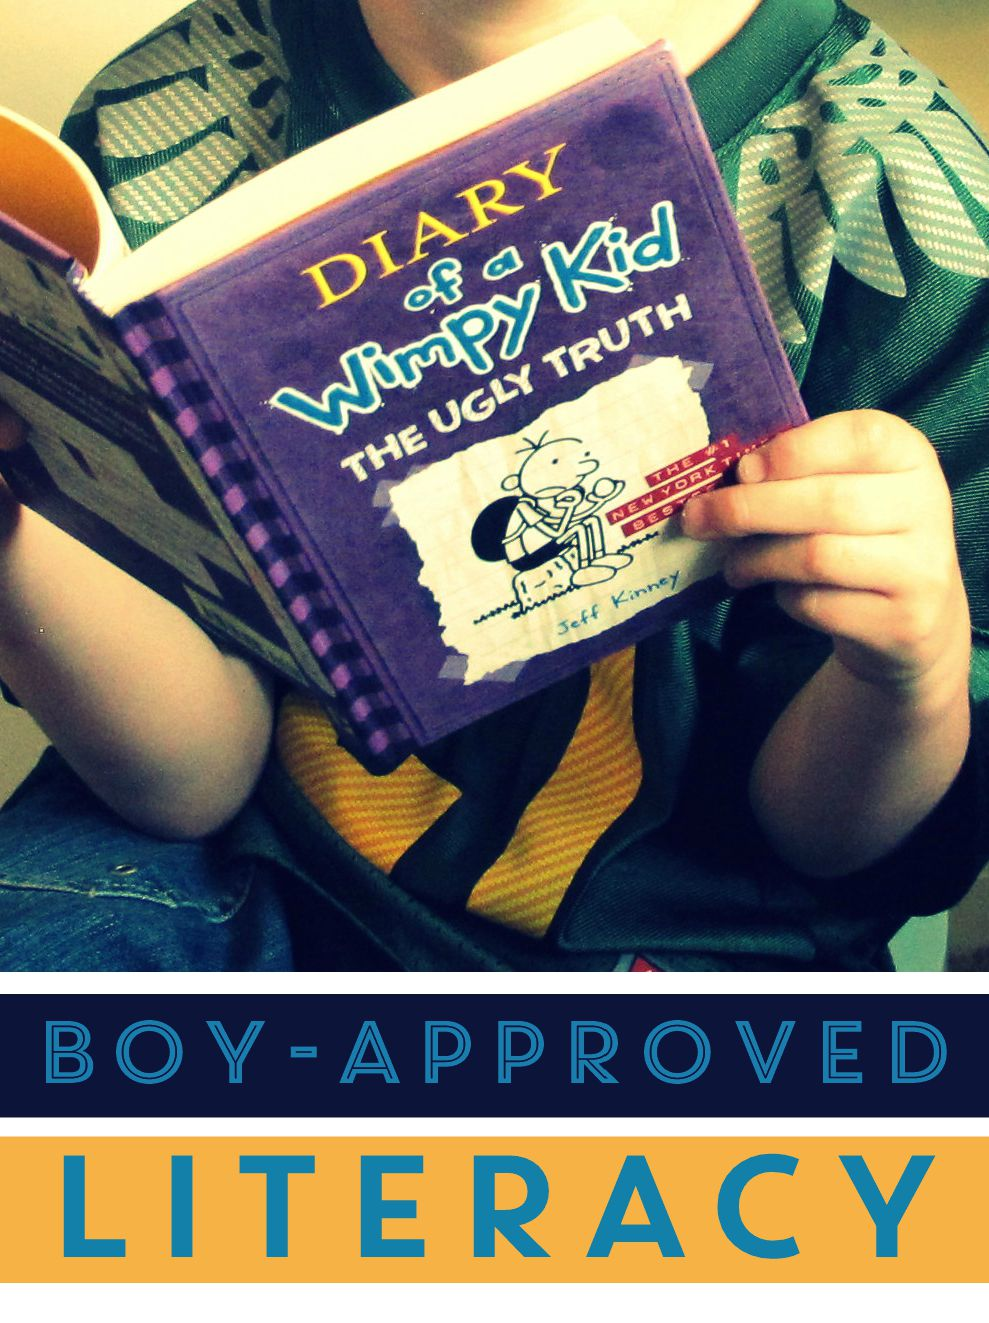 Boy-Approved Literacy